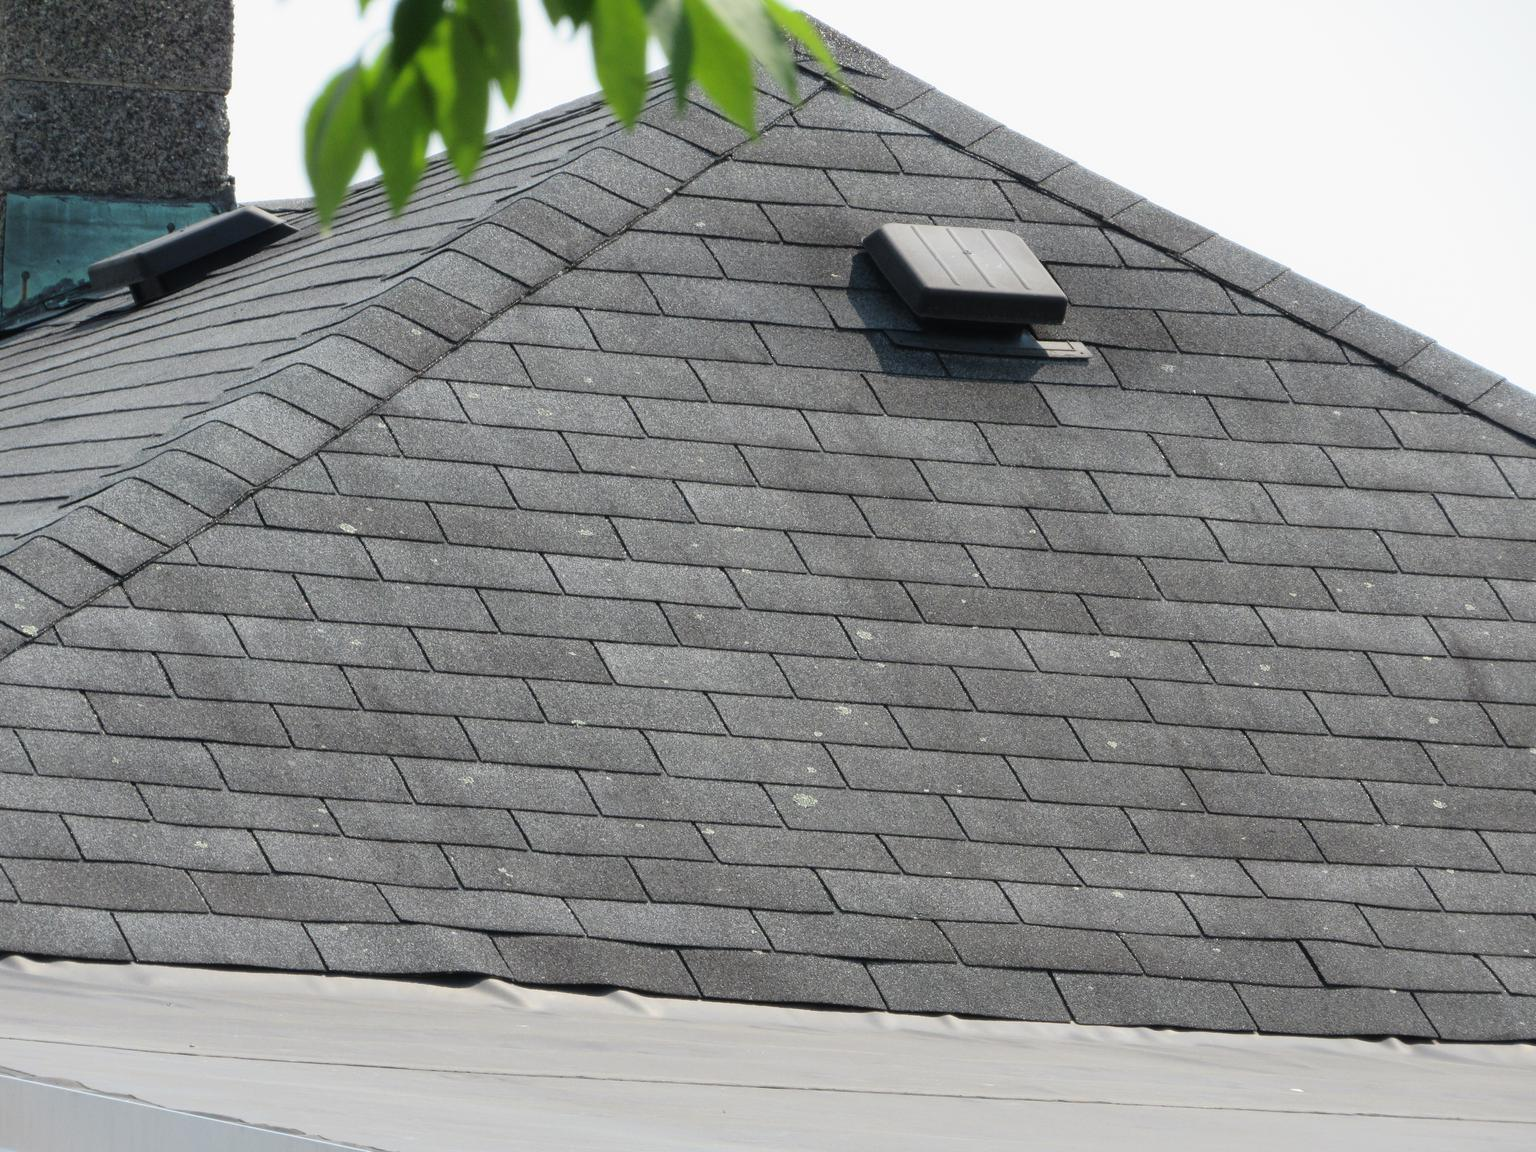 Membrane Epdm Rubber Roofing Products Pvc Roofing Rubber Roof Installation Or Repair Guide